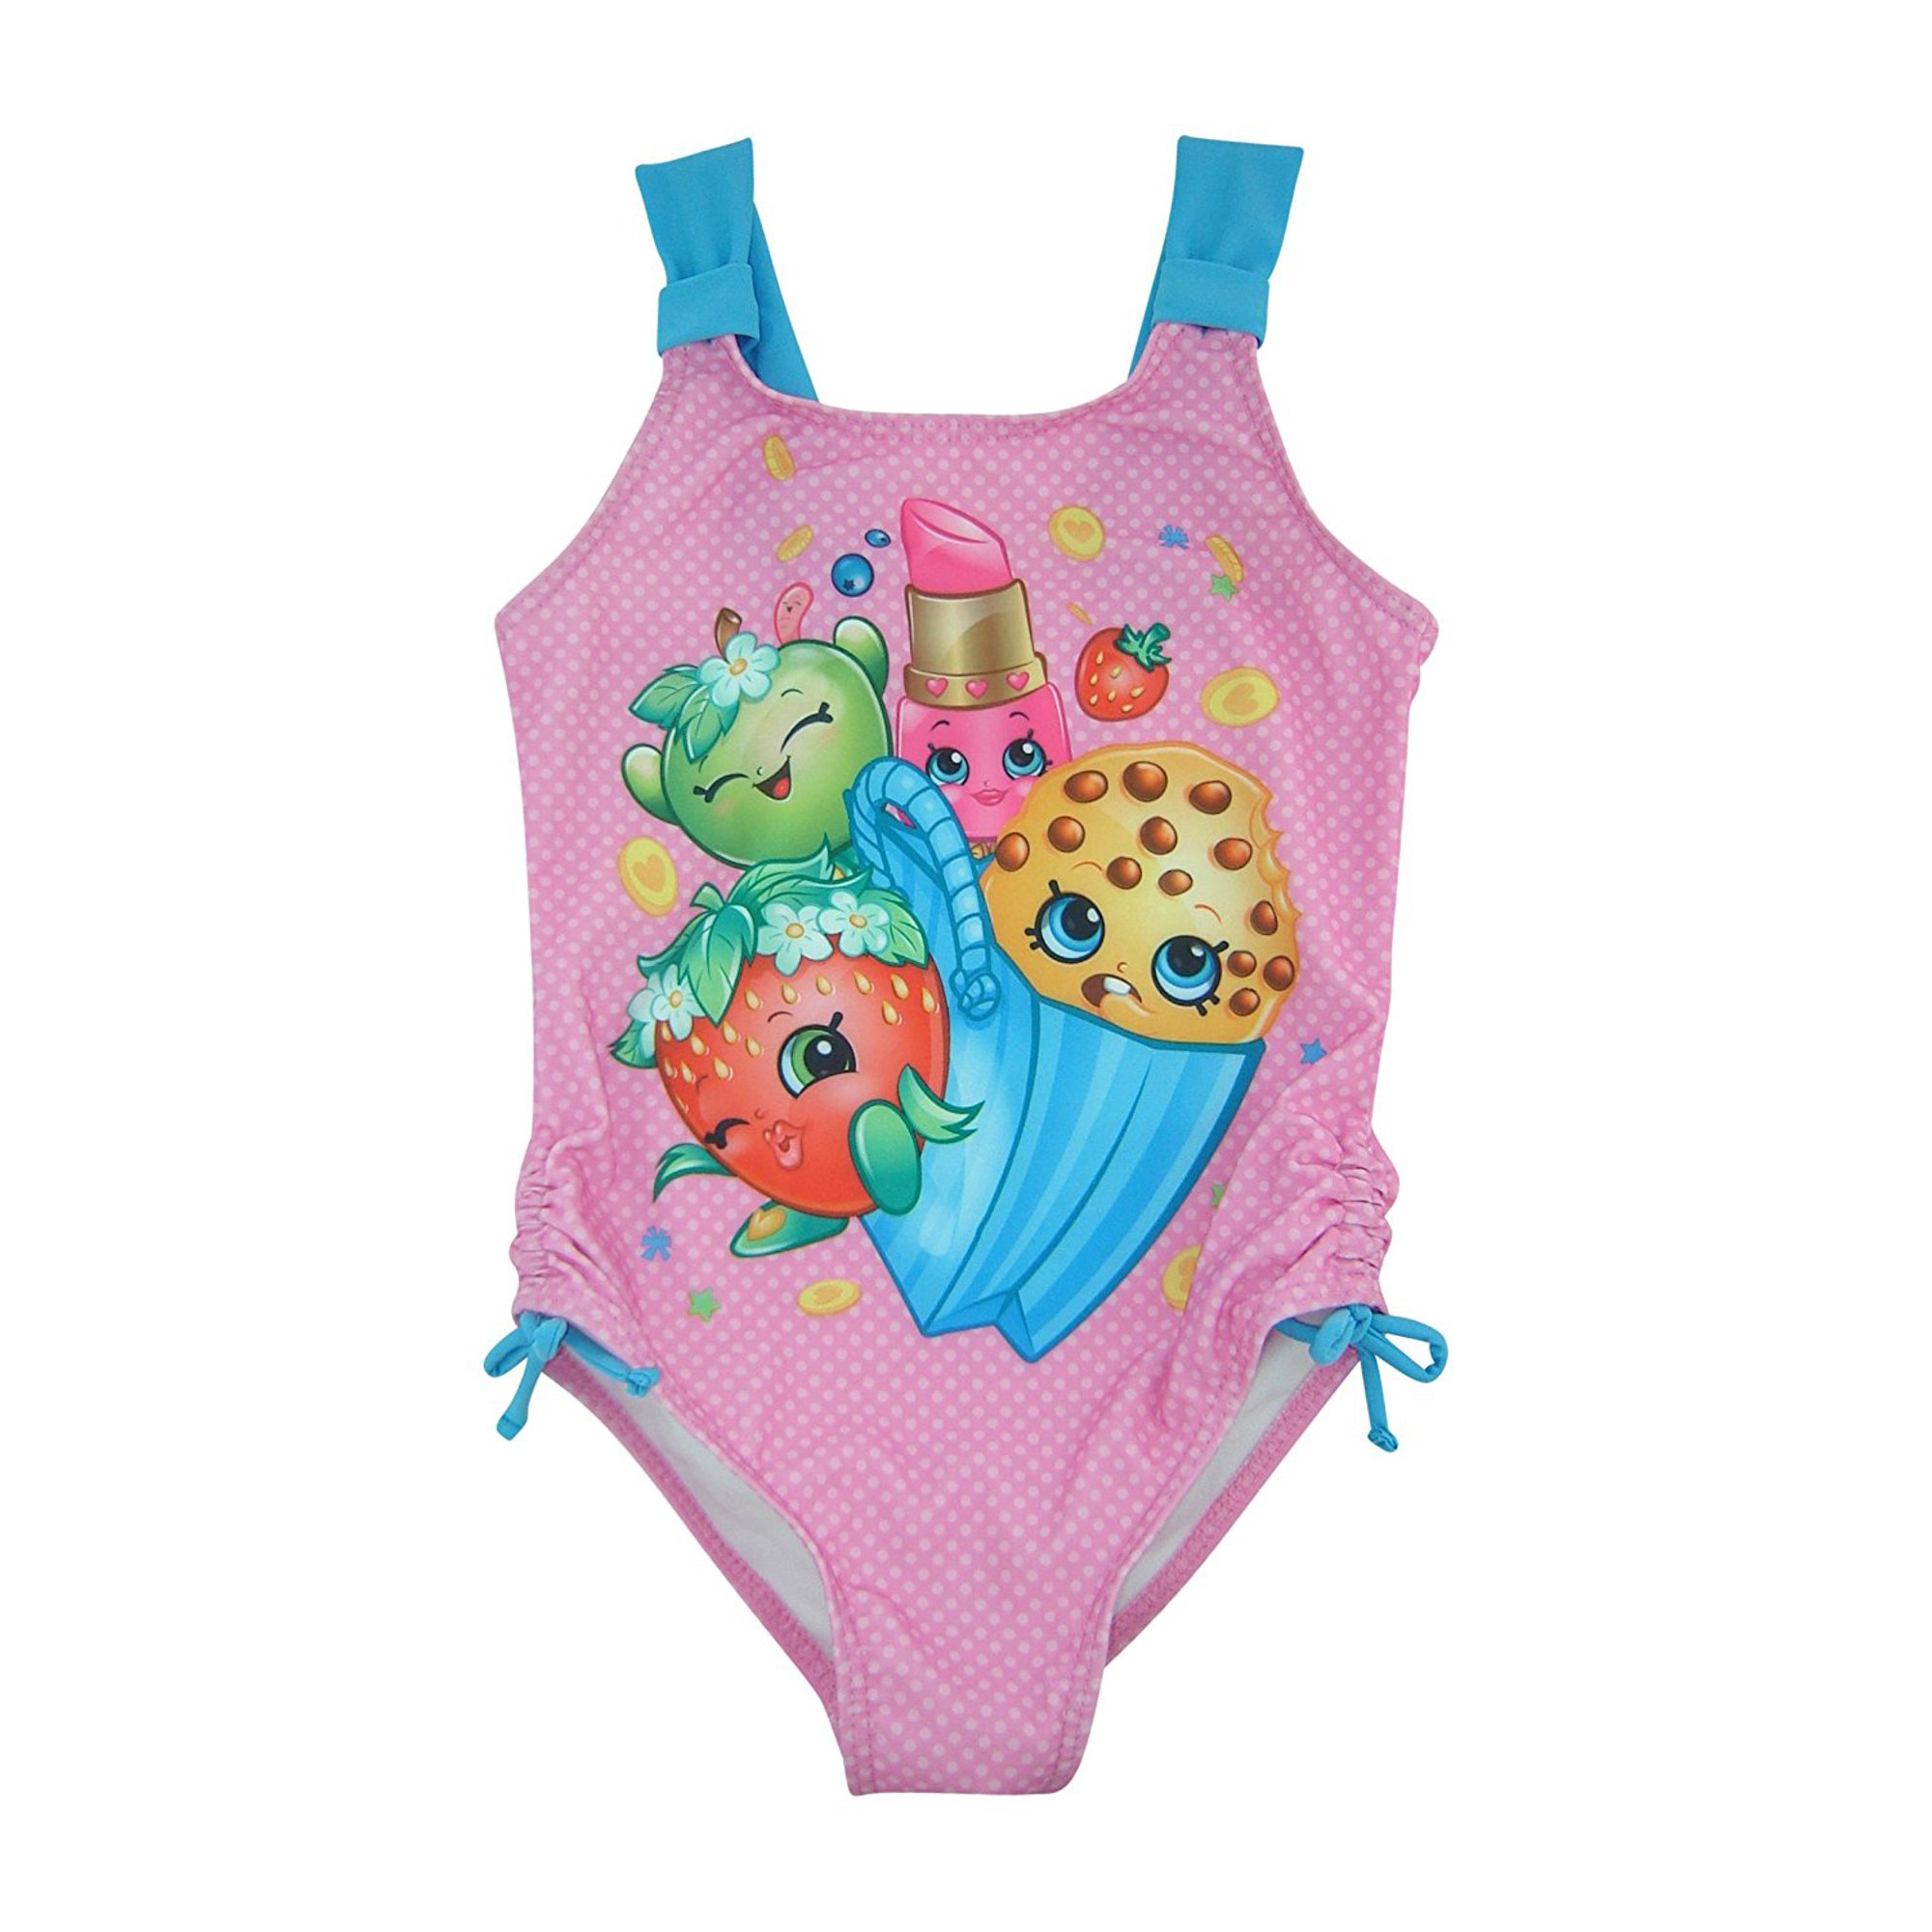 f5b74ee359981 Shopkins Girls One-Piece Pink UVB 50+ Swimsuit | Walmart Canada